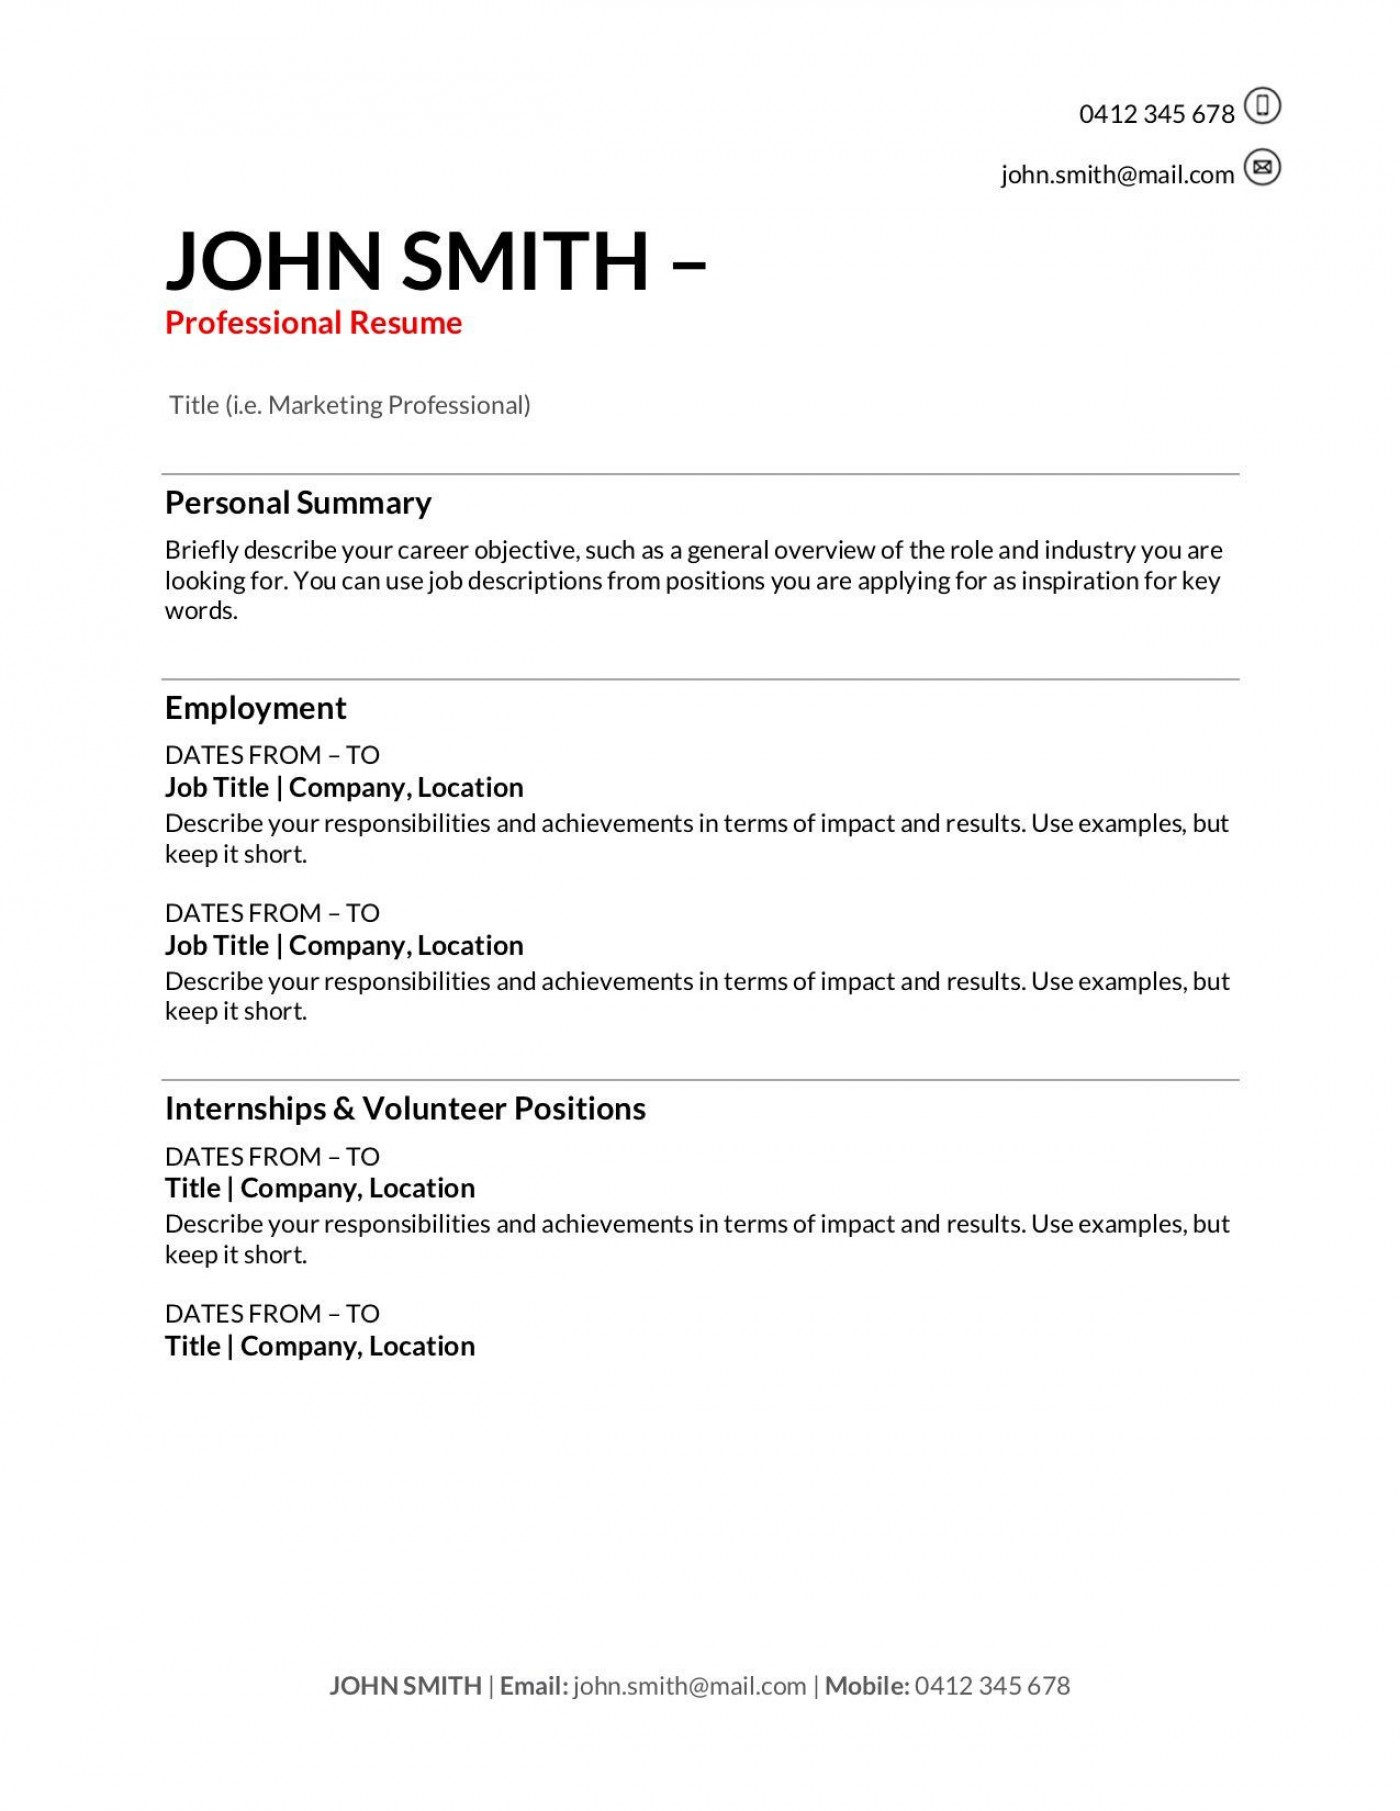 006 Impressive Resume Template For First Job High Def  After College Sample Student Teenager1400